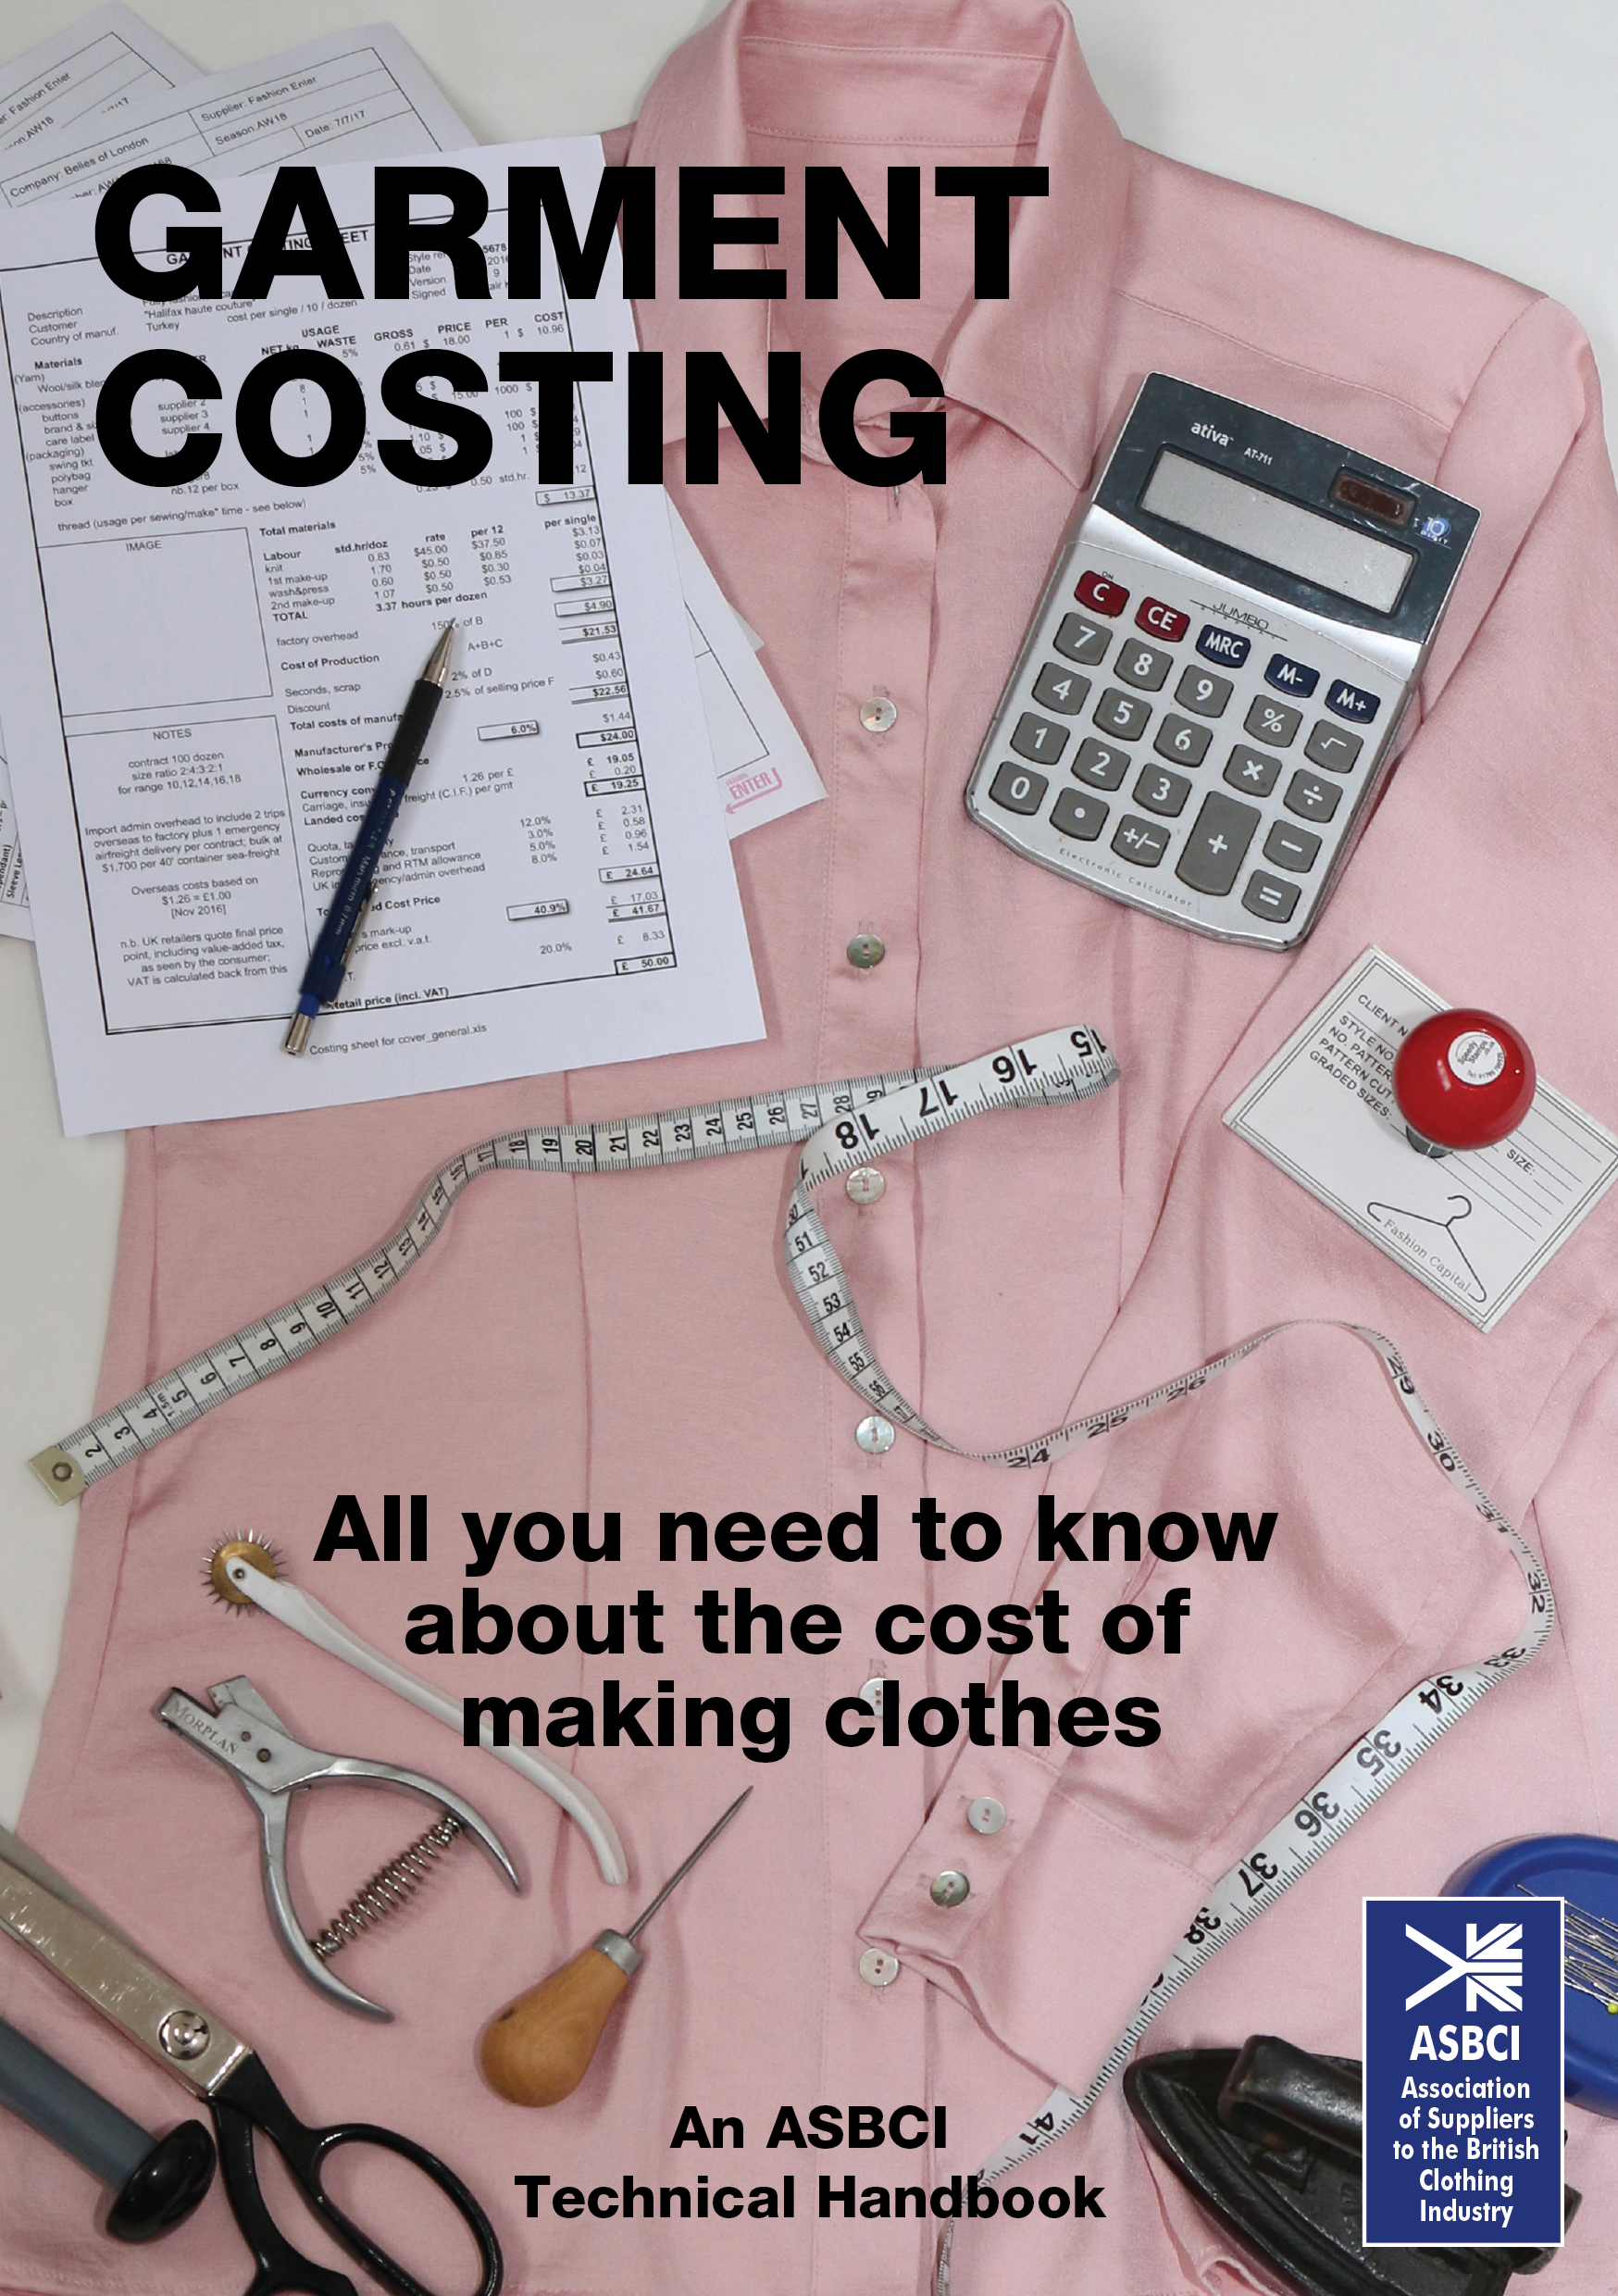 Garment Costing - All you need to know about the cost of making clothes